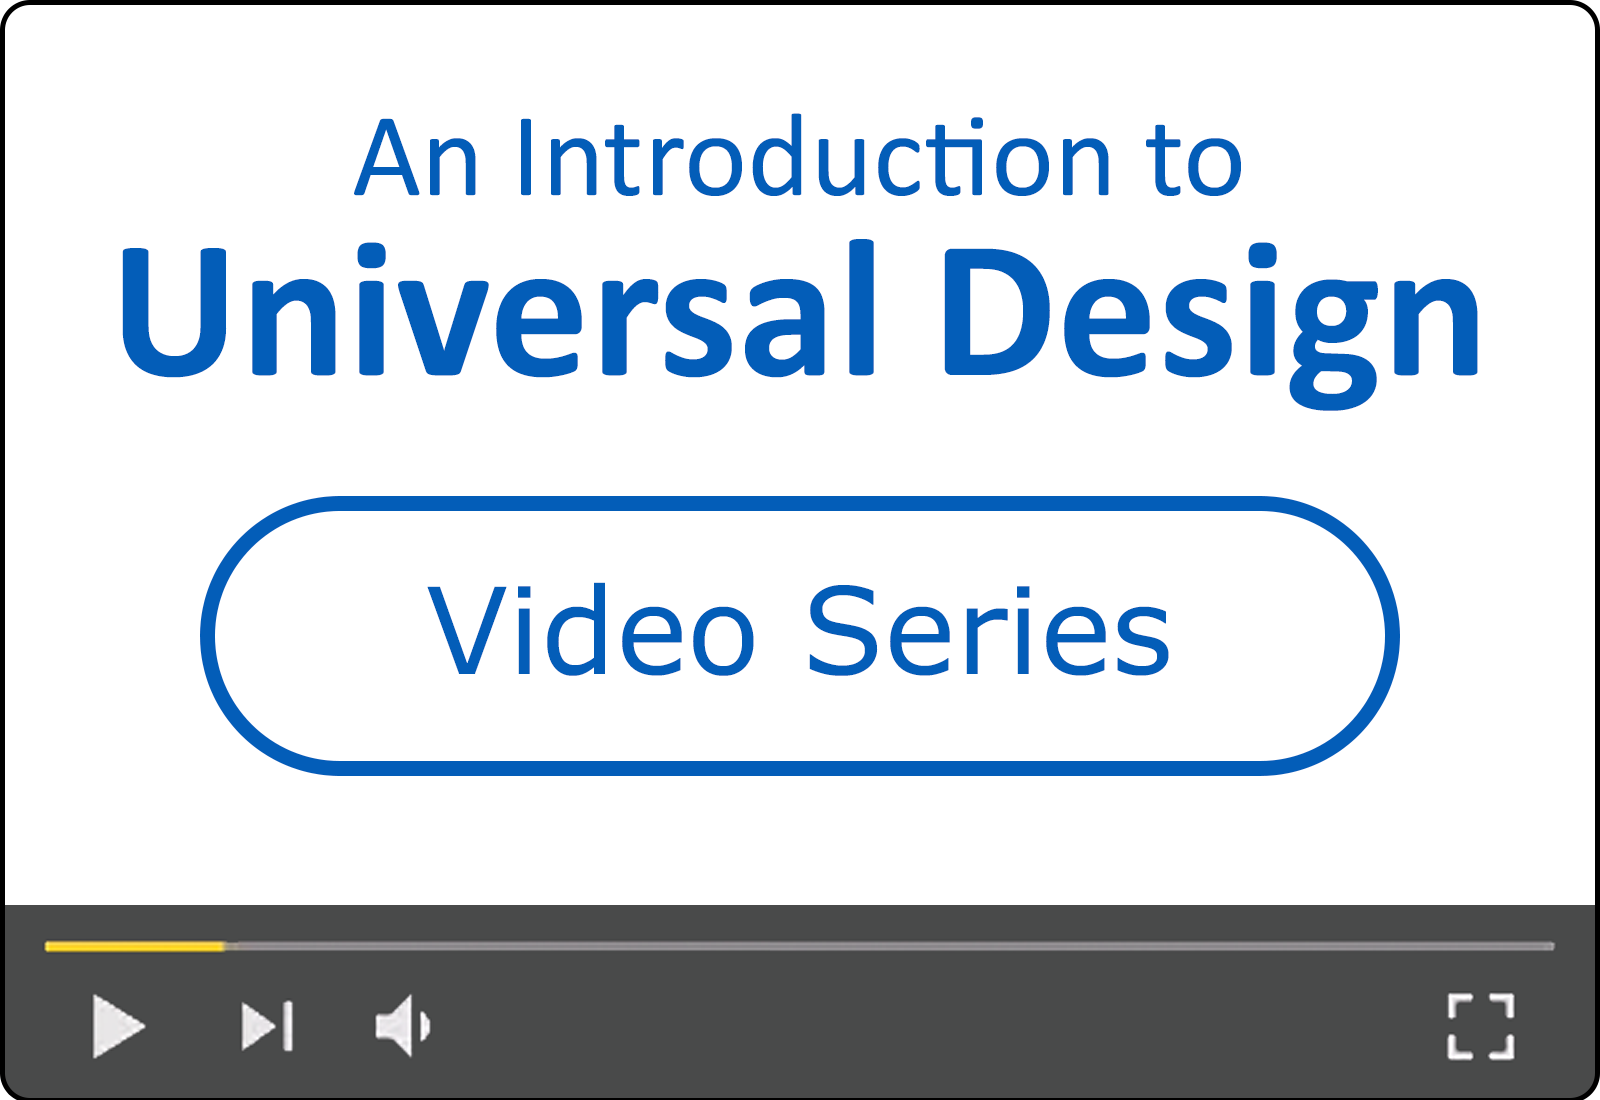 An Introduction to Universal Design for Content Creators